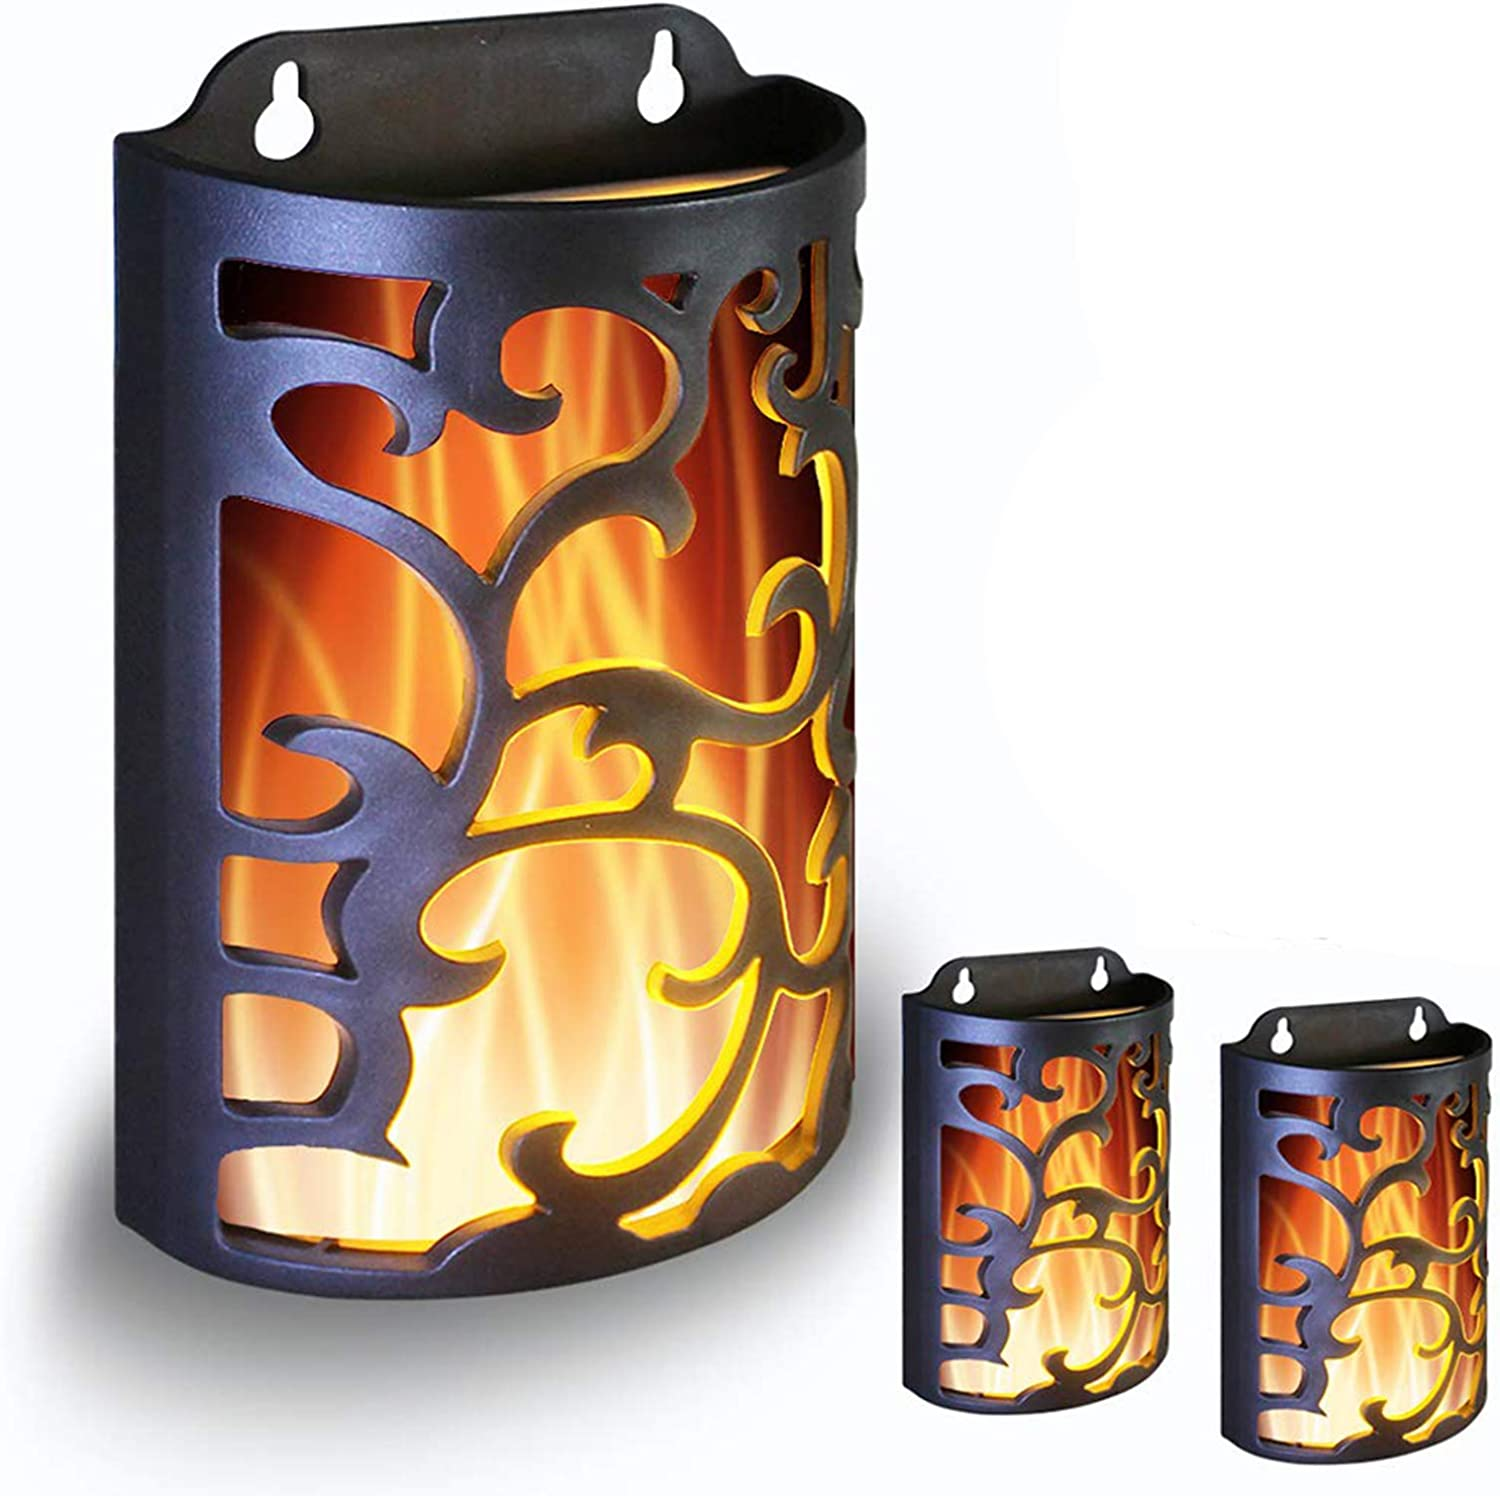 Wralwayslx Decorative Lanterns With Timer Candle Light Flameless Candles Indoor Outdoor Wall Sconces Flickering Flames Wall Light For Hallway Bathroom Use 3aa Battery Not Included 3 Pack Home Improvement